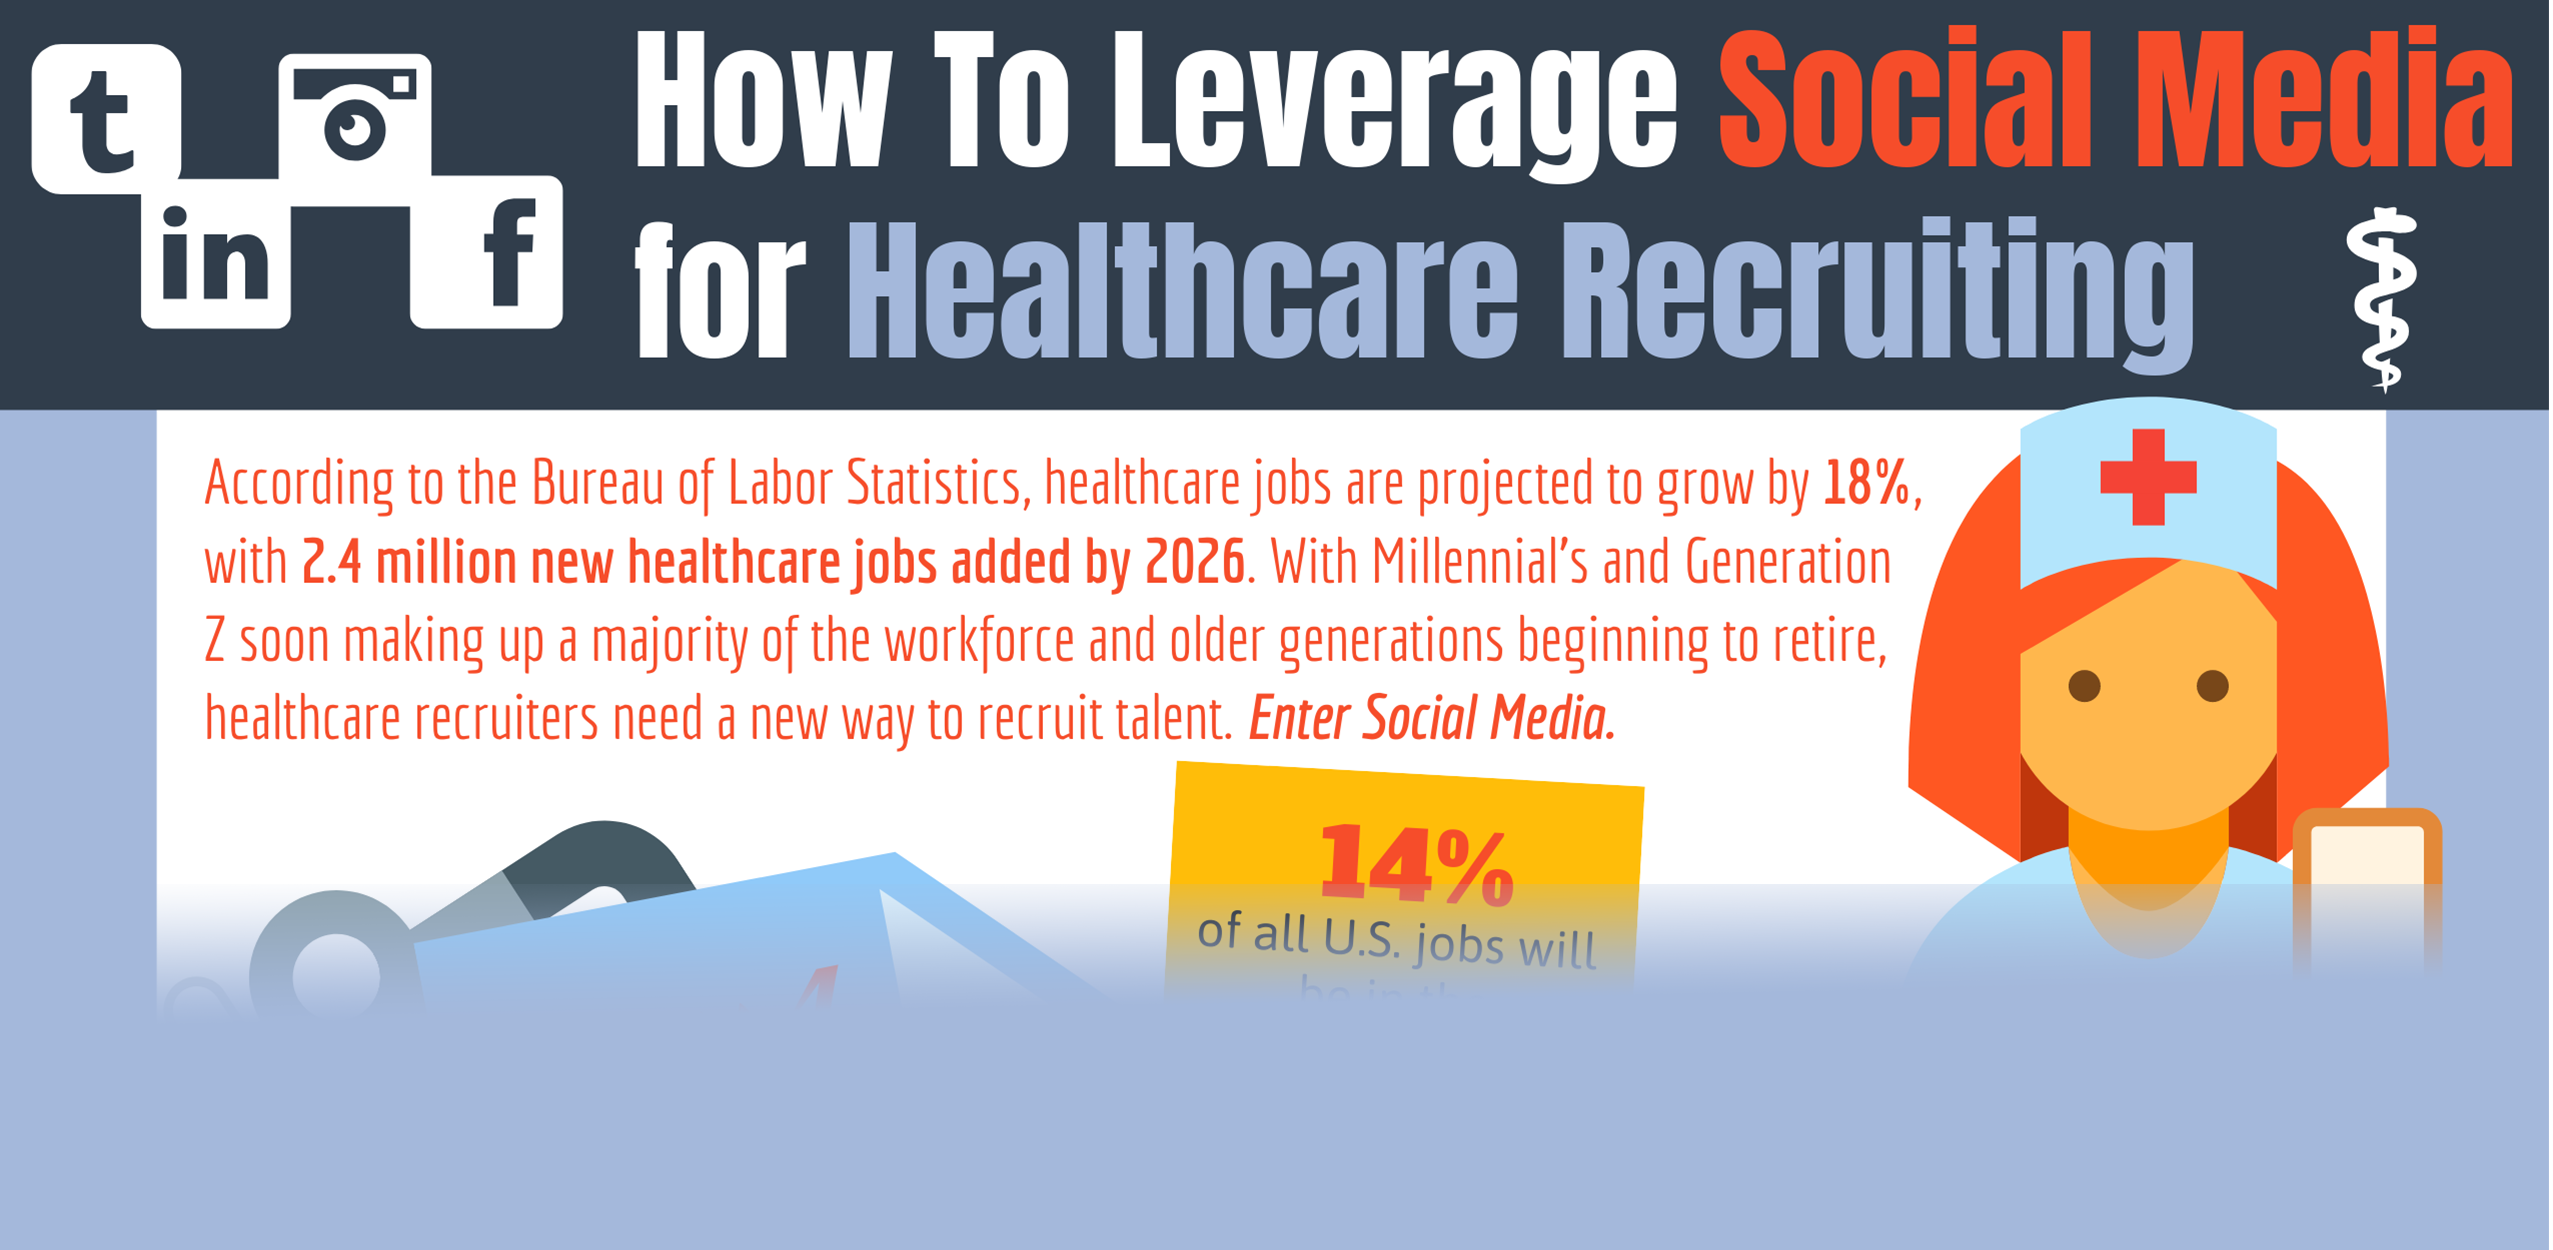 How to Leverage Social Media for Healthcare Recruiting - Infographic